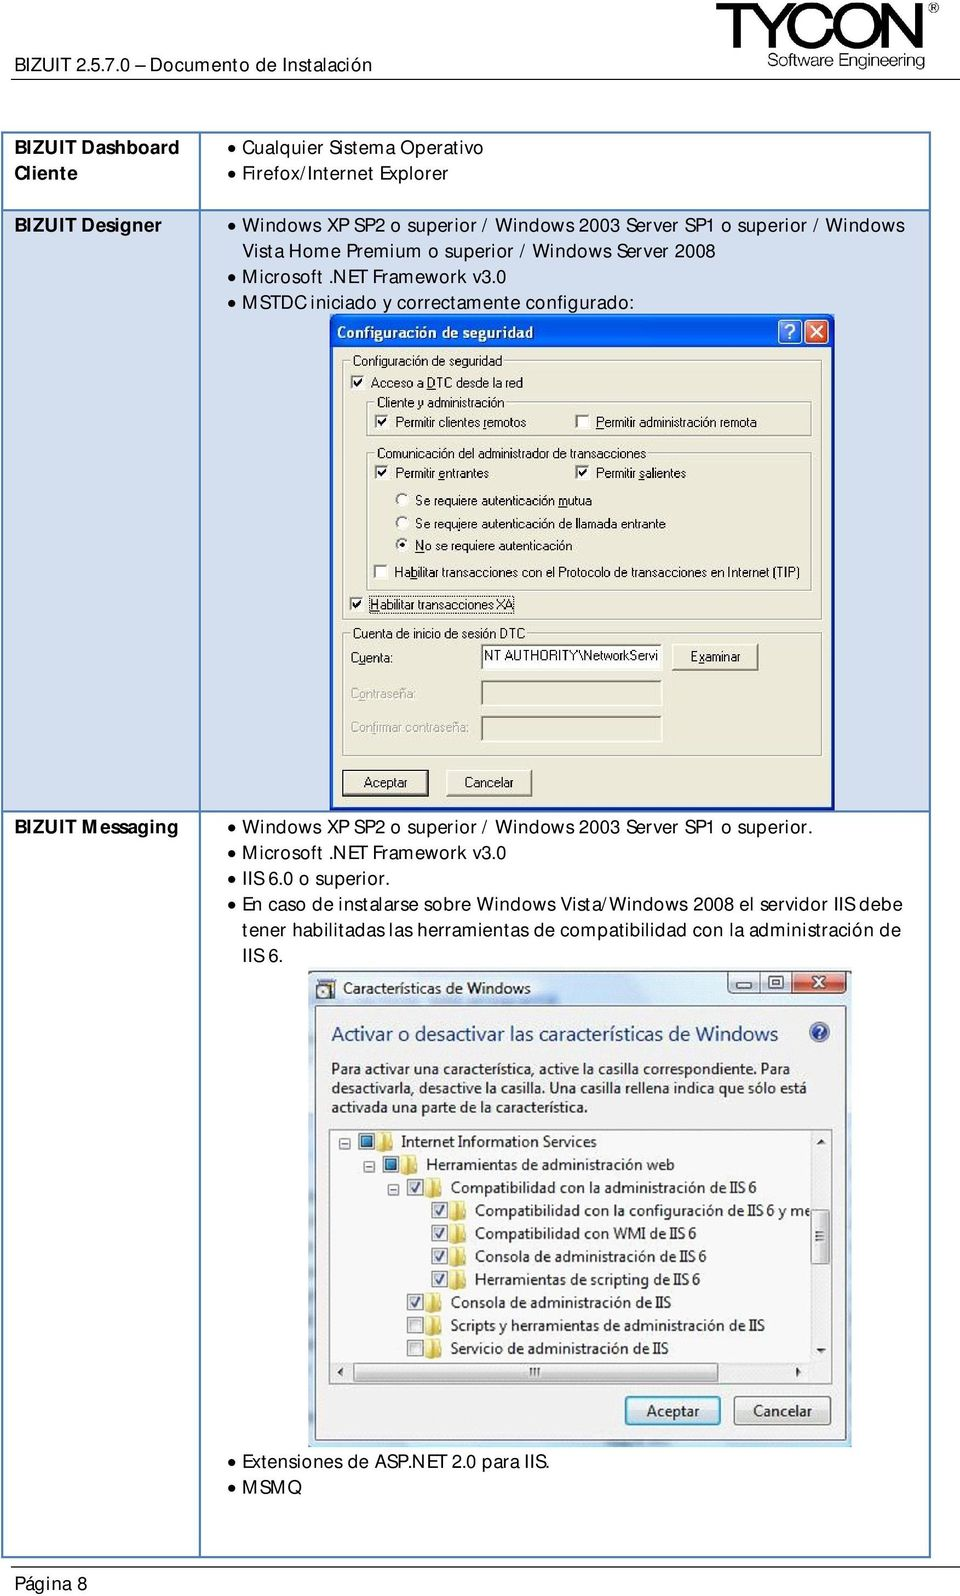 0 MSTDC iniciado y correctamente configurado: BIZUIT Messaging Windows XP SP2 o superior / Windows 2003 Server SP1 o superior. Microsoft.NET Framework v3.